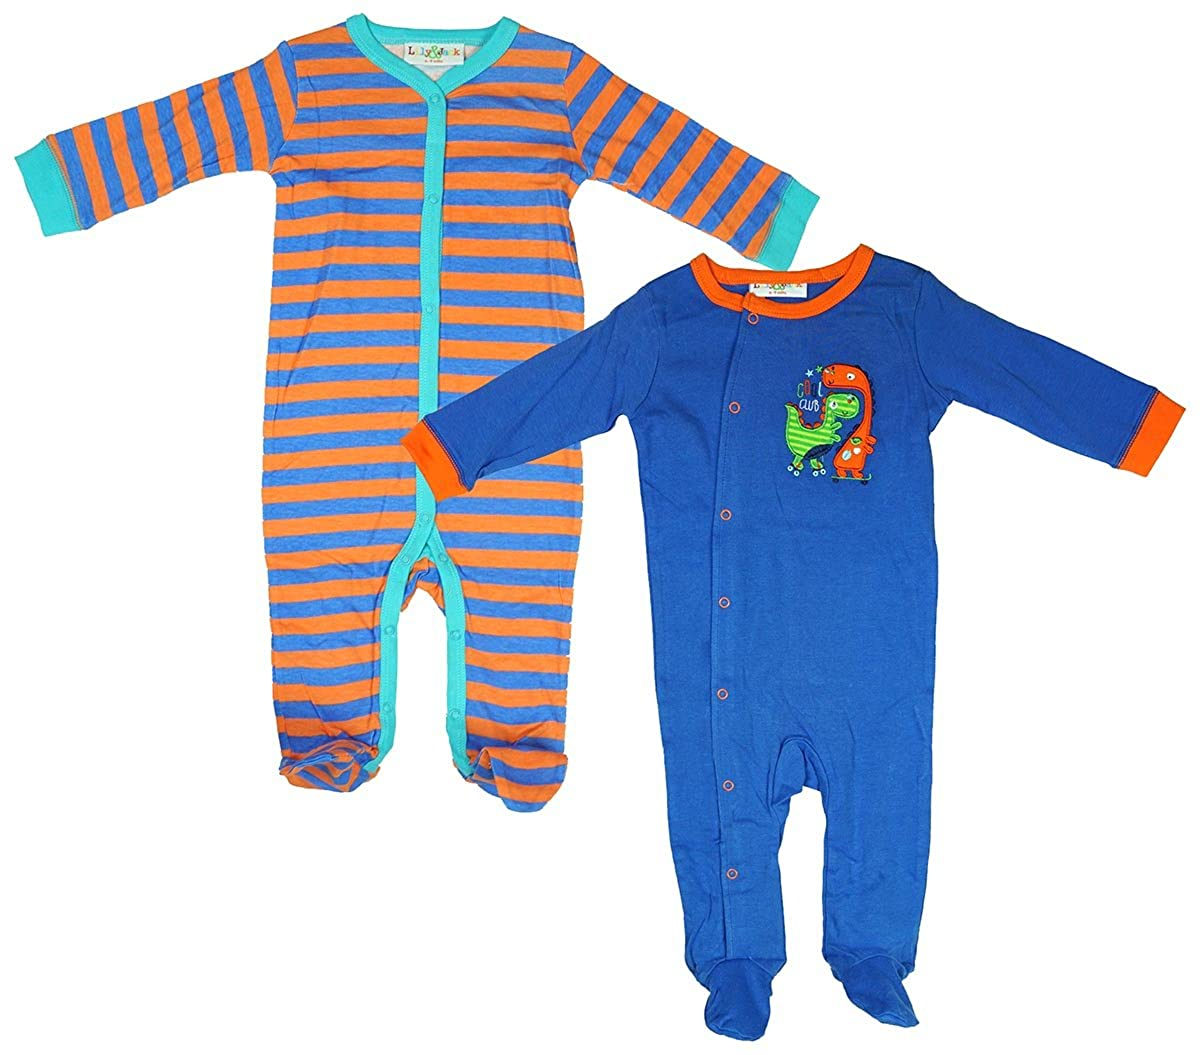 Jack and Lily Boys Baby Pack of 2 Cool Club Dinosaur Sleepsuit Rompers Sizes from Newborn to 9 Months